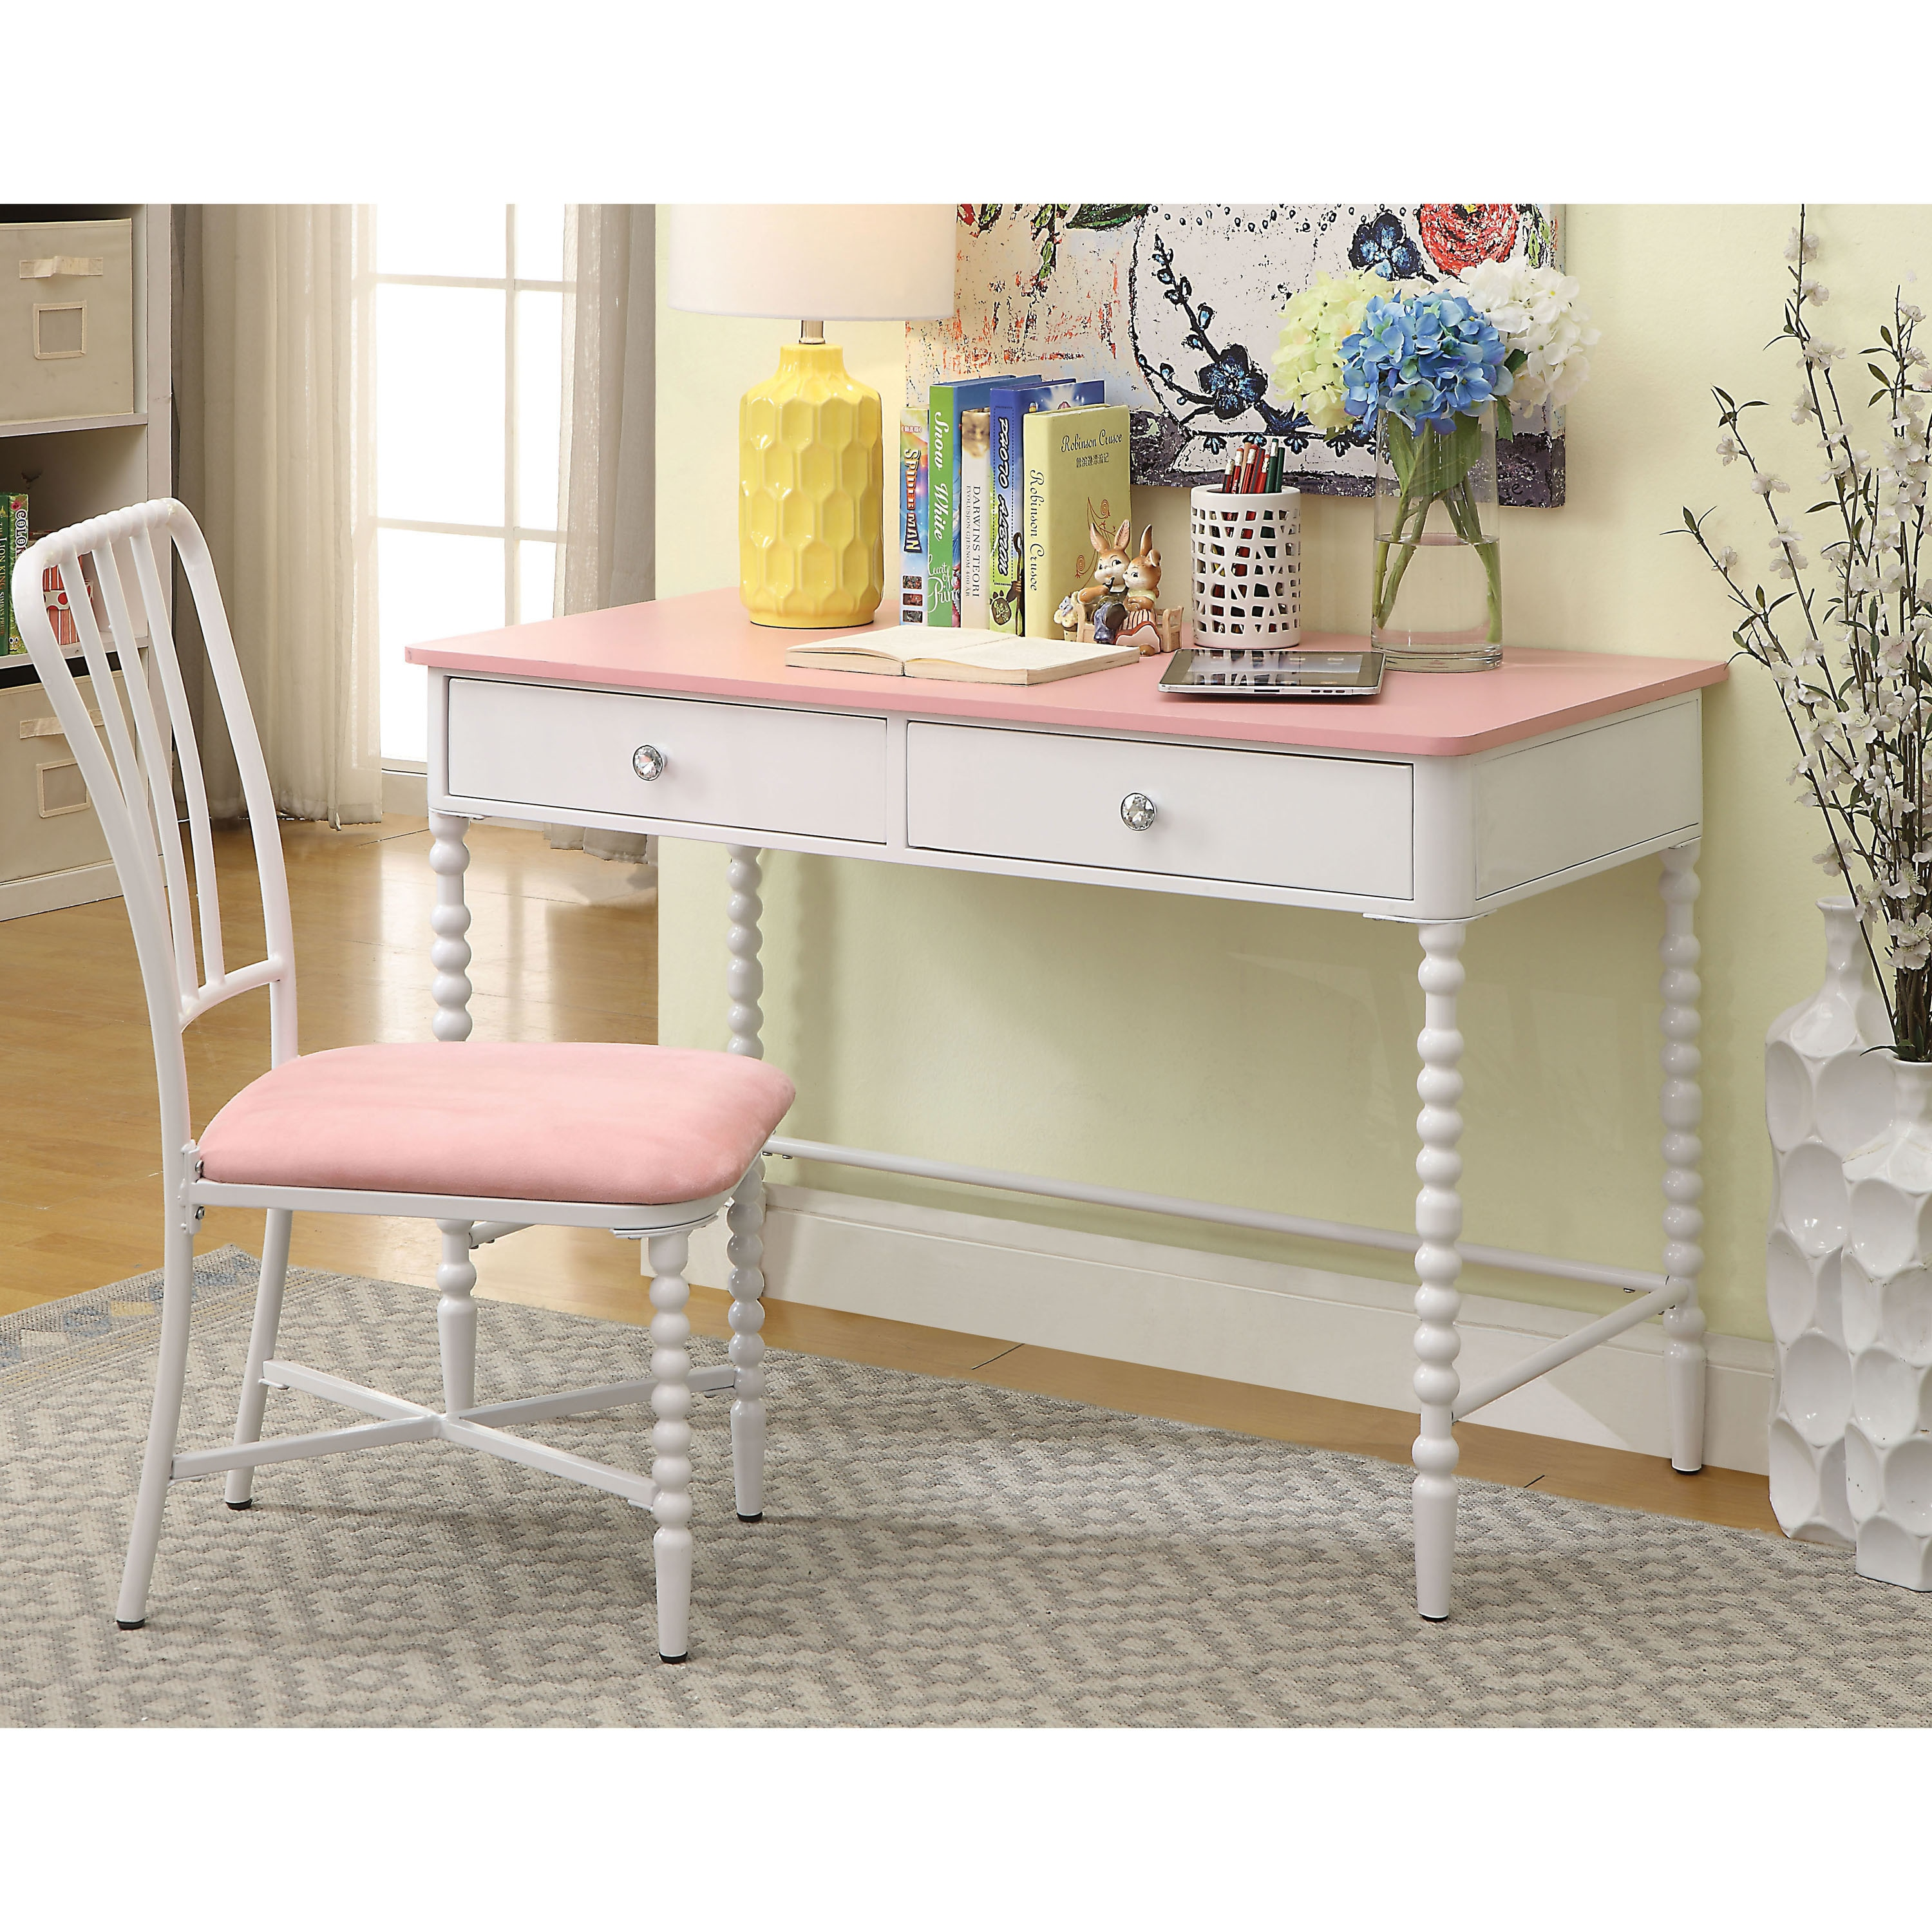 Cool Cerise Transitional White 2 Piece Desk And Chair Set By Foa Andrewgaddart Wooden Chair Designs For Living Room Andrewgaddartcom